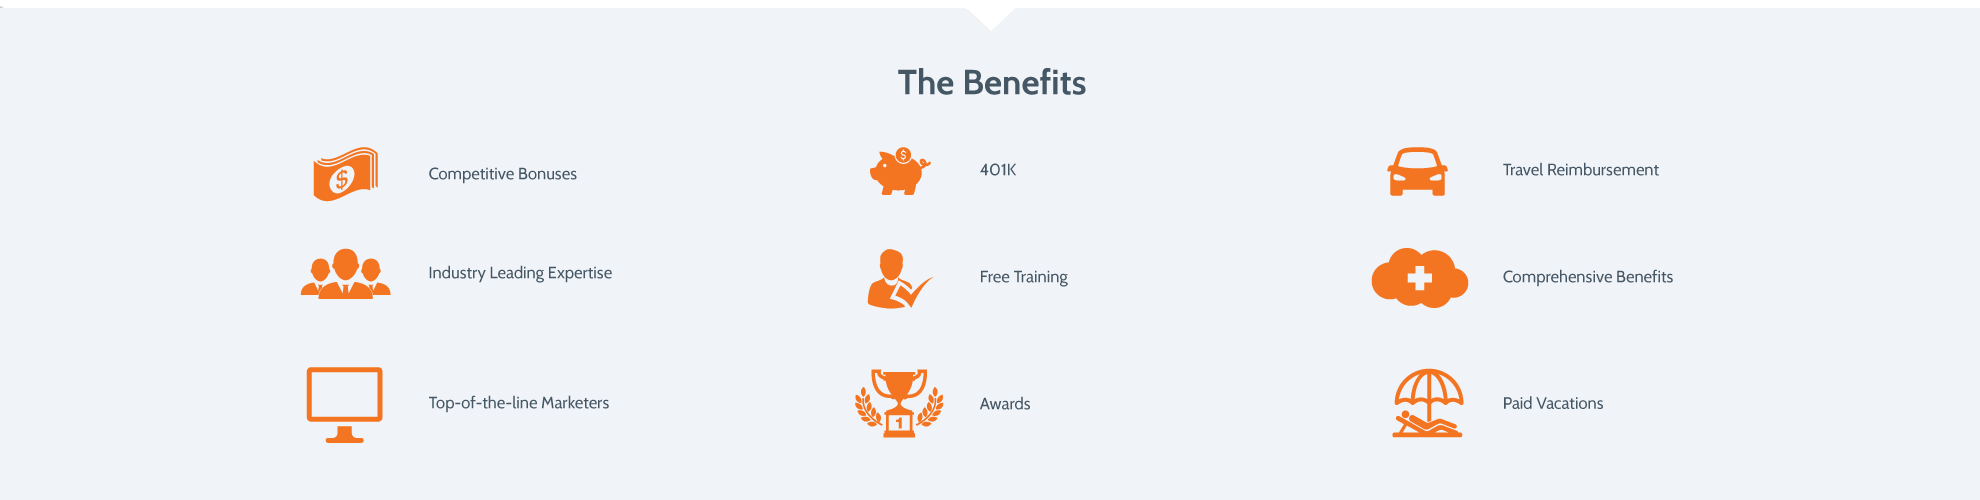 Benefits-updated.png